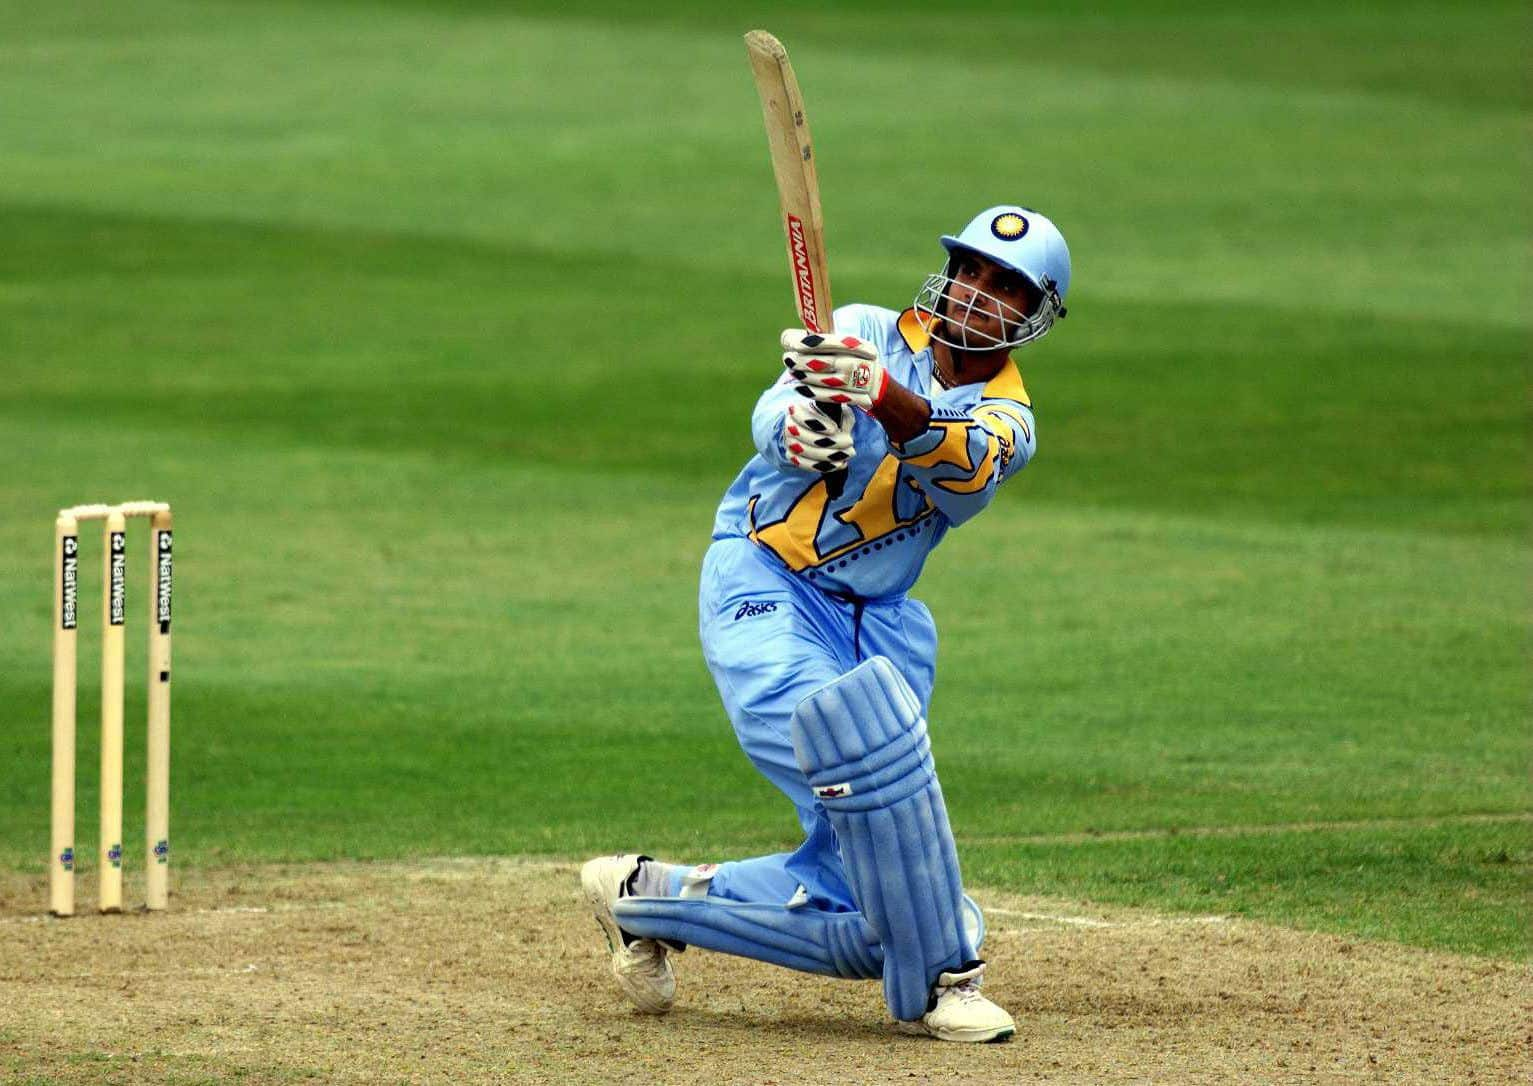 Sourav Ganguly's 183 remains the highest score by an Indian in the World Cup